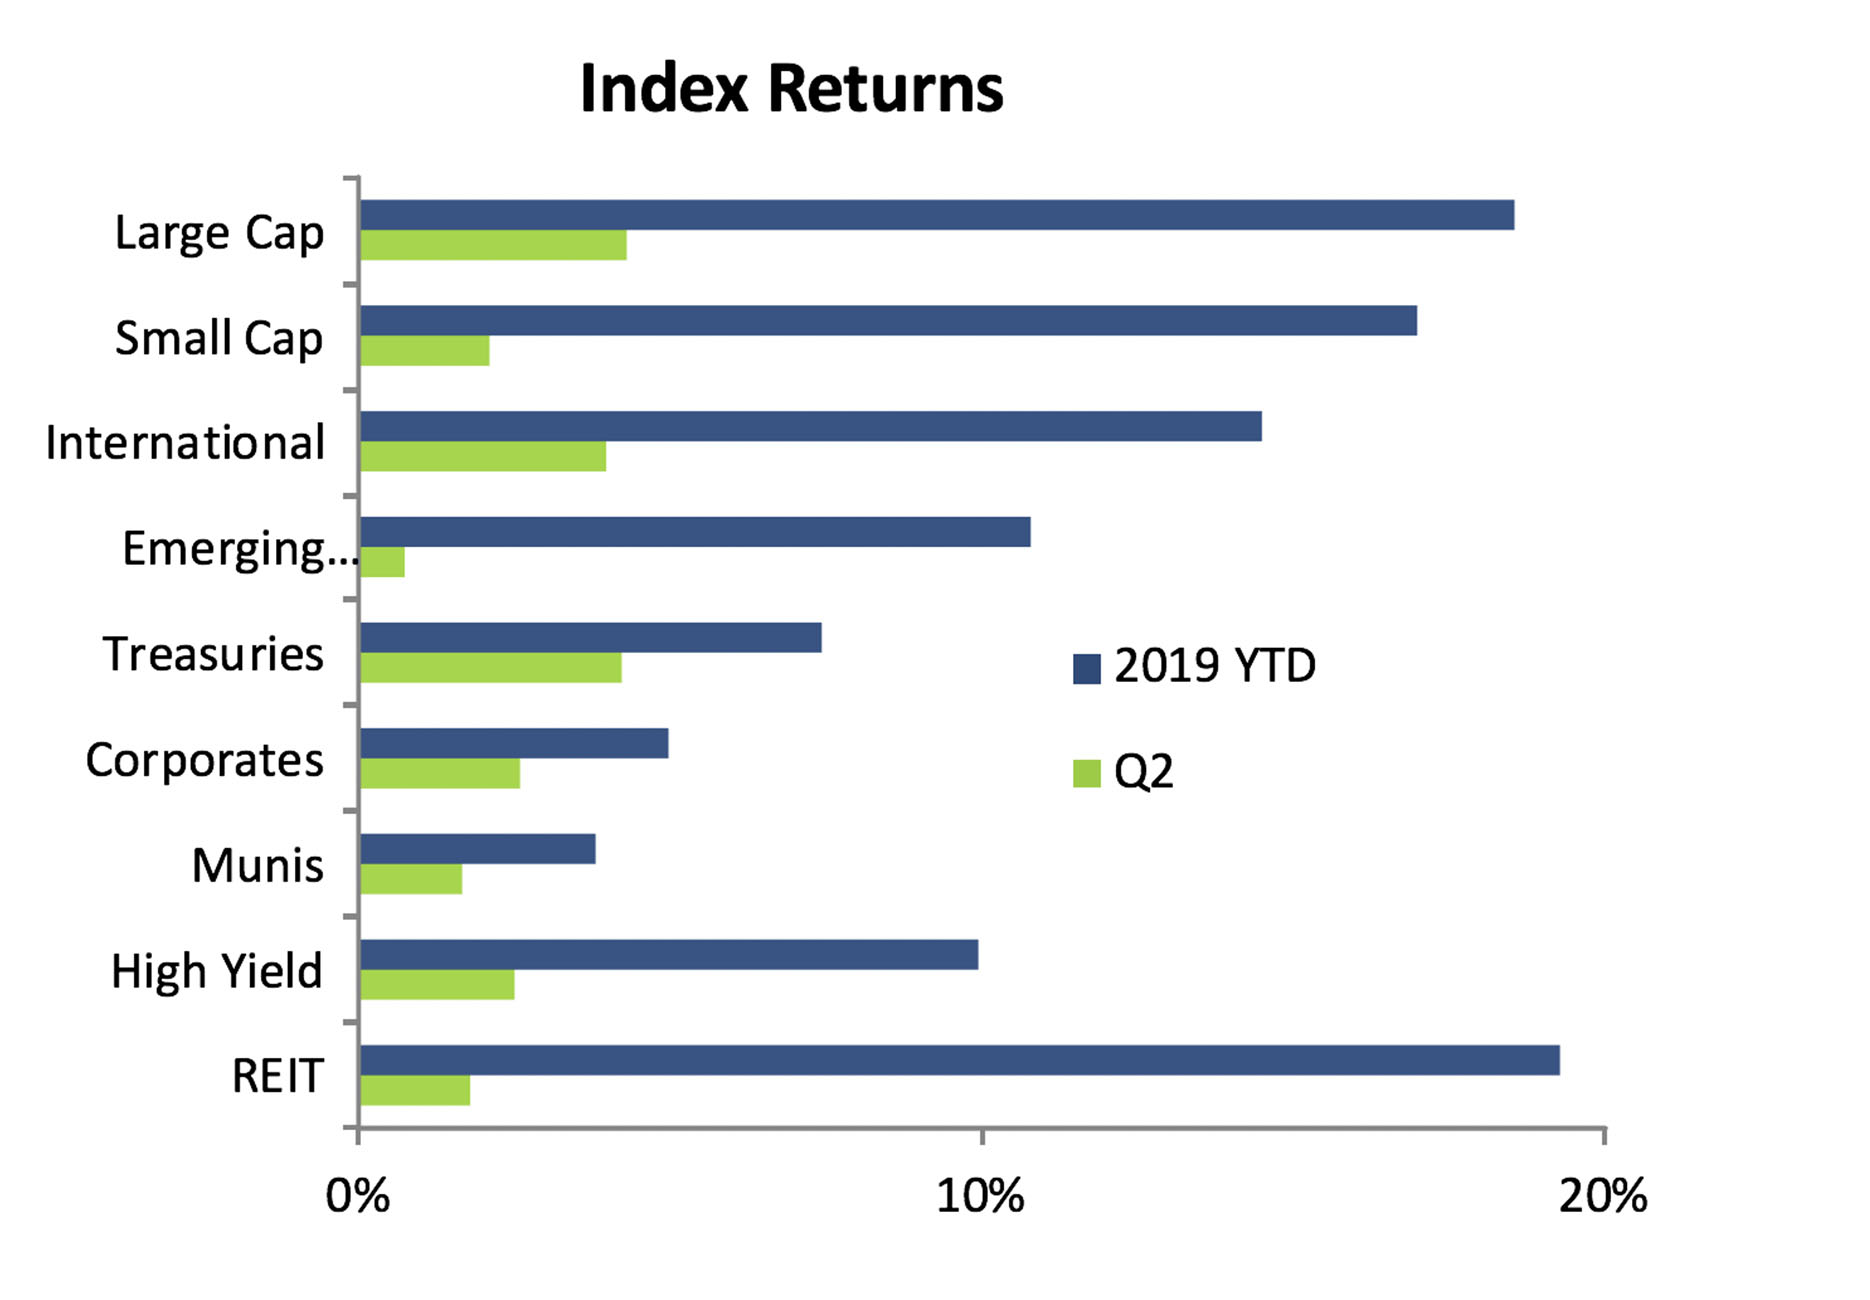 Markets Strong in Second Quarter 2019